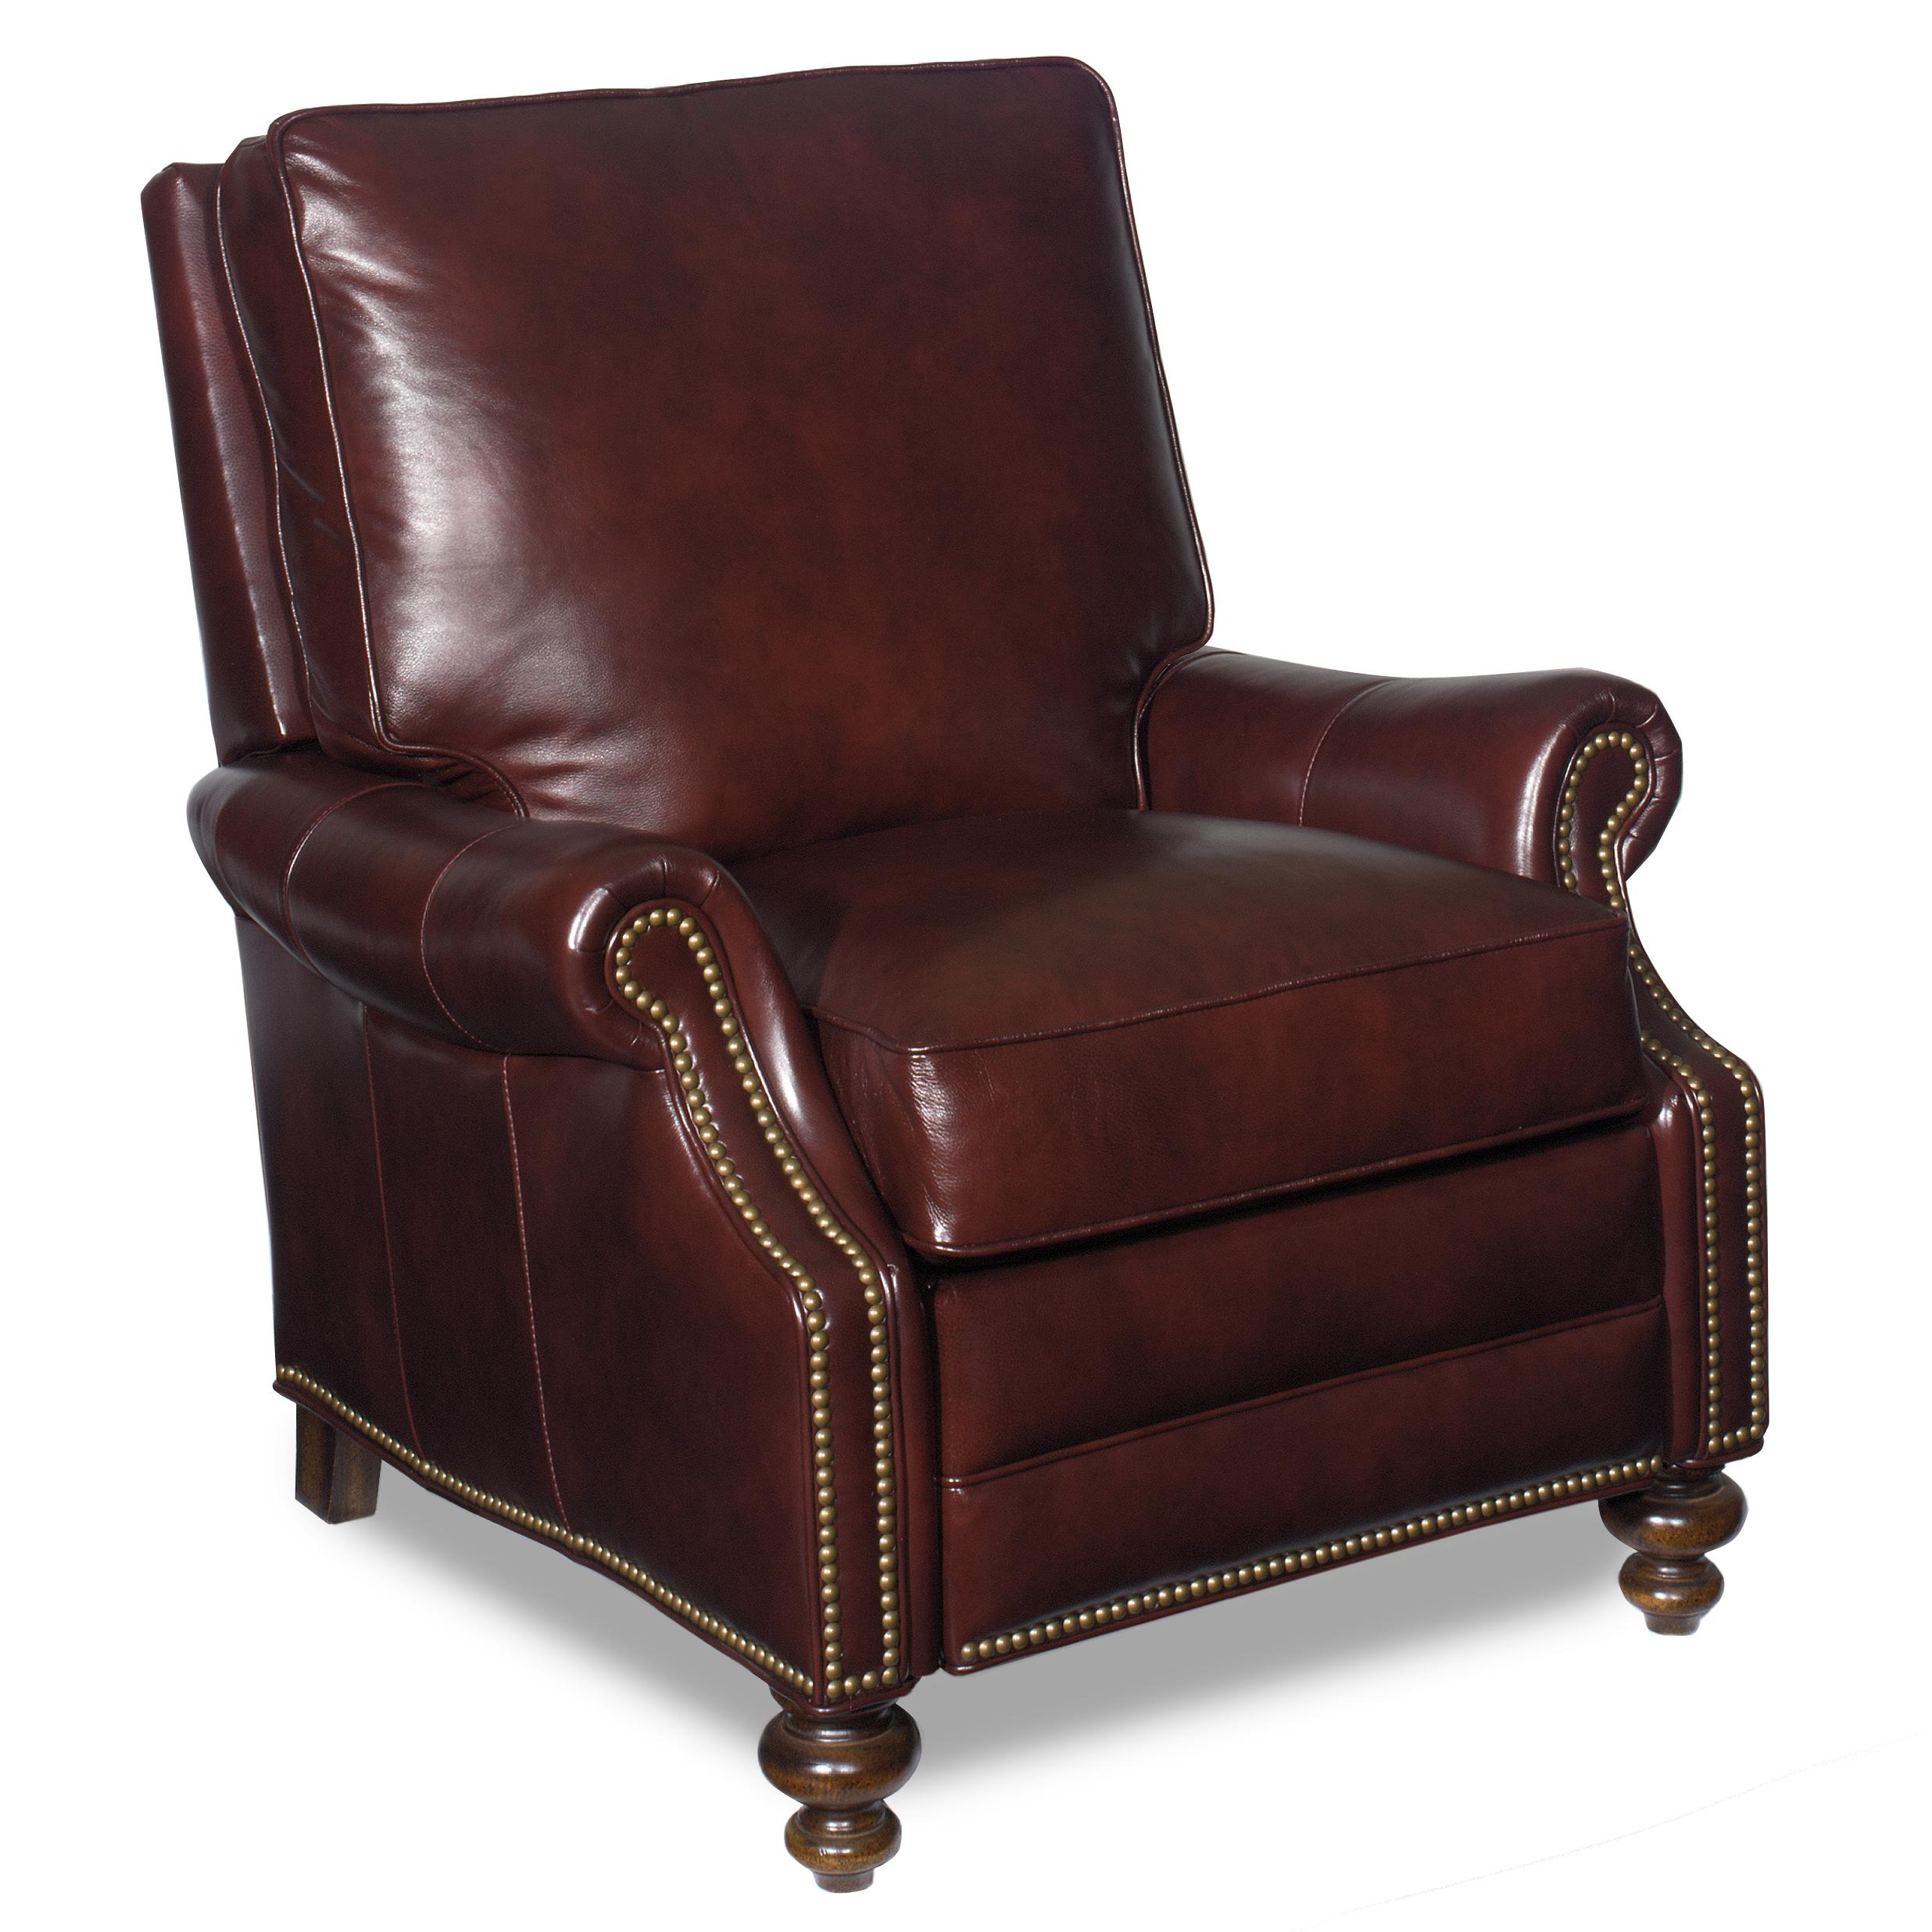 Bradington Young Chairs That Recline West Haven 3 Way Lounger Belfort Furniture High Leg